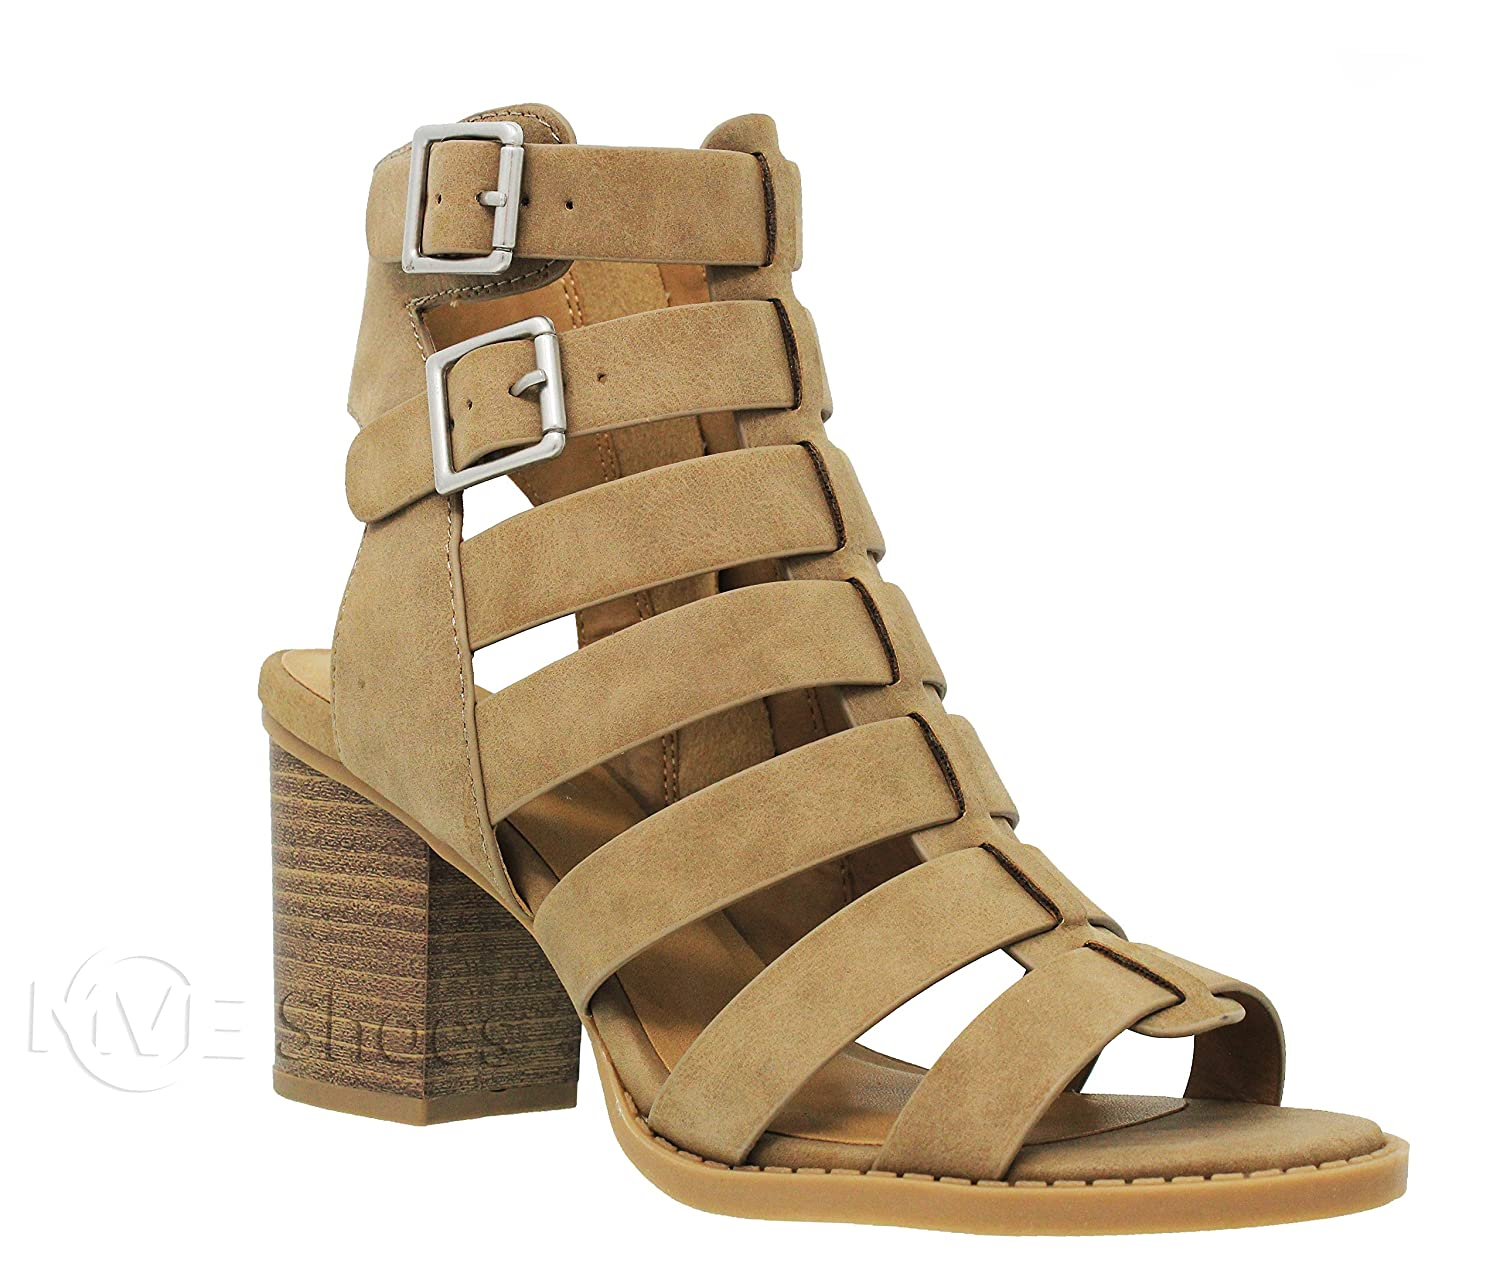 MVE Shoes Women's Open Toe Cut Out Mid Heel Sandal - Ankle Strap Faux Leather Dress Shoes - Sexy Stacked Sandal B0799QT6QC 10 B(M) US|Taupedispu*n